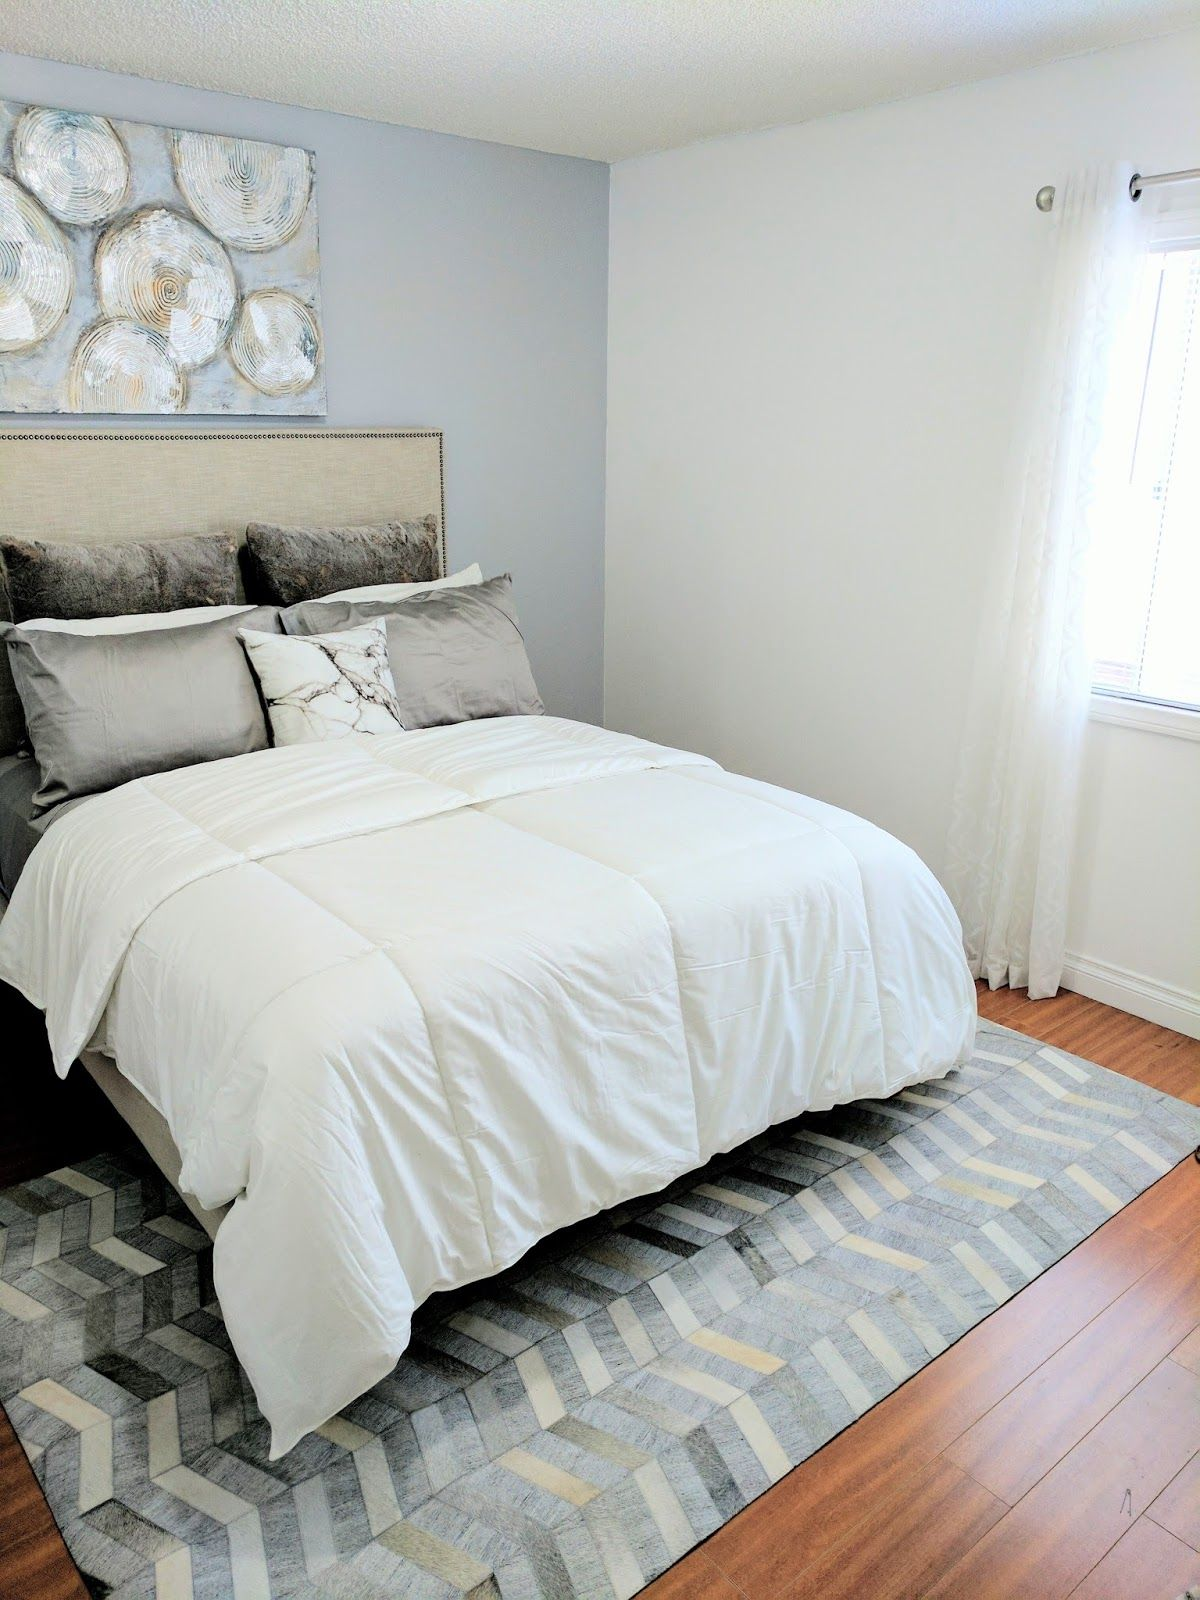 My Cozy Bedroom With Rugs Usa Bedroom Decor Cozy Cozy Bedroom Design Bedroom Rug